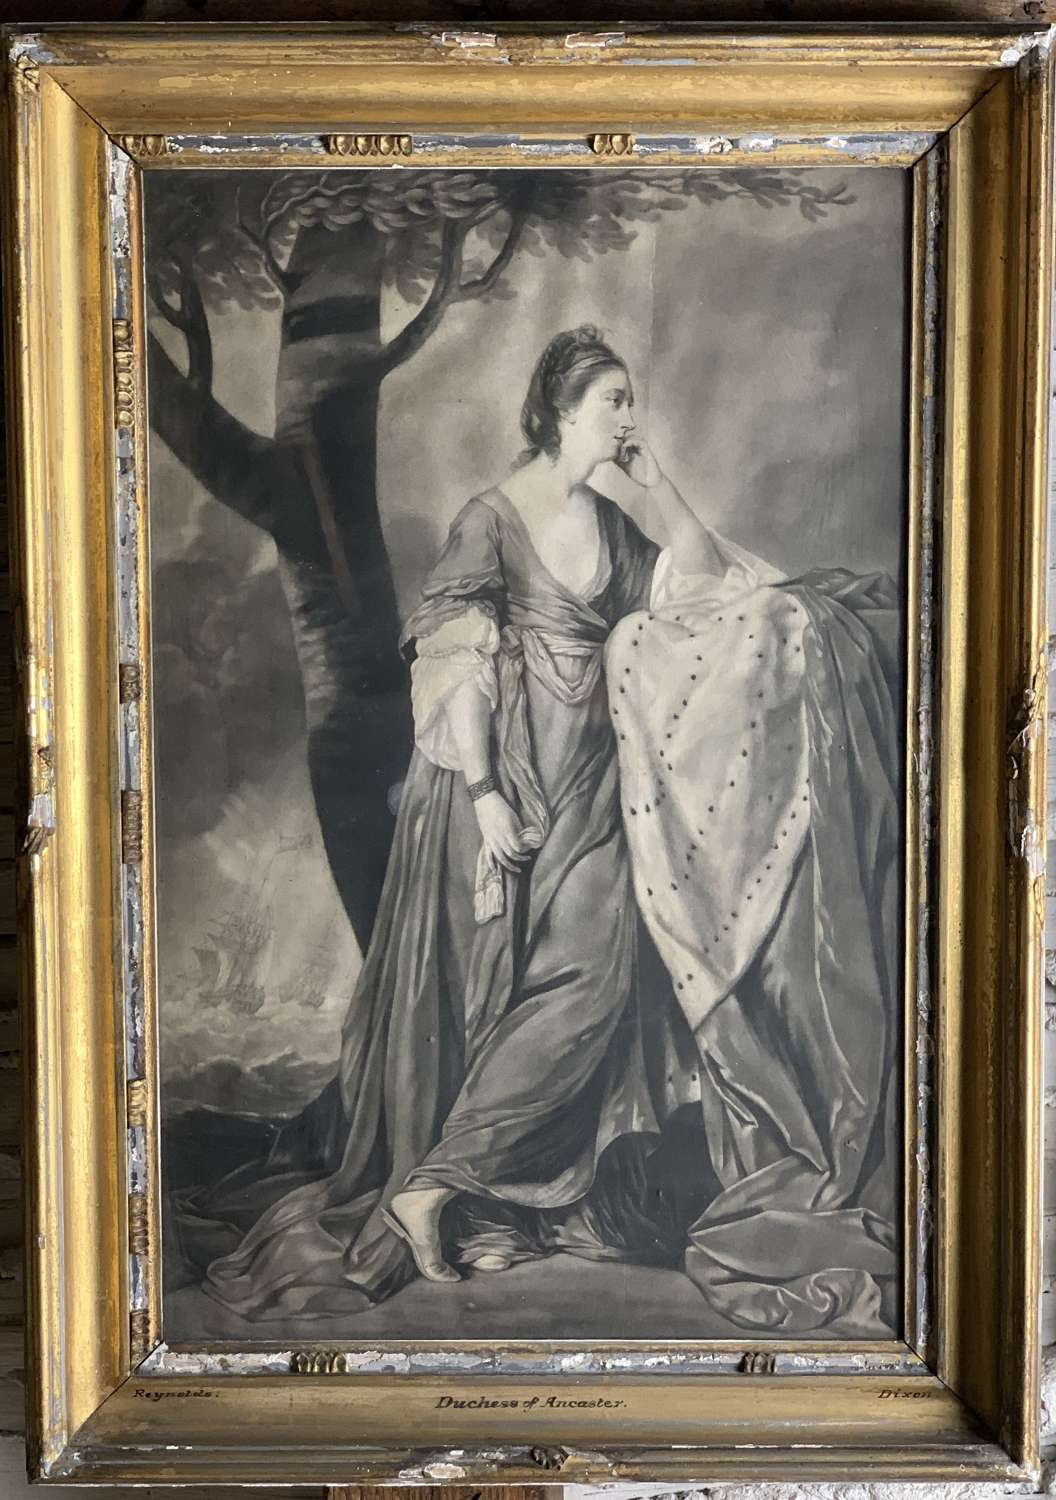 Mary Duchess of Ancaster Mezzotint after Joshua Reynolds